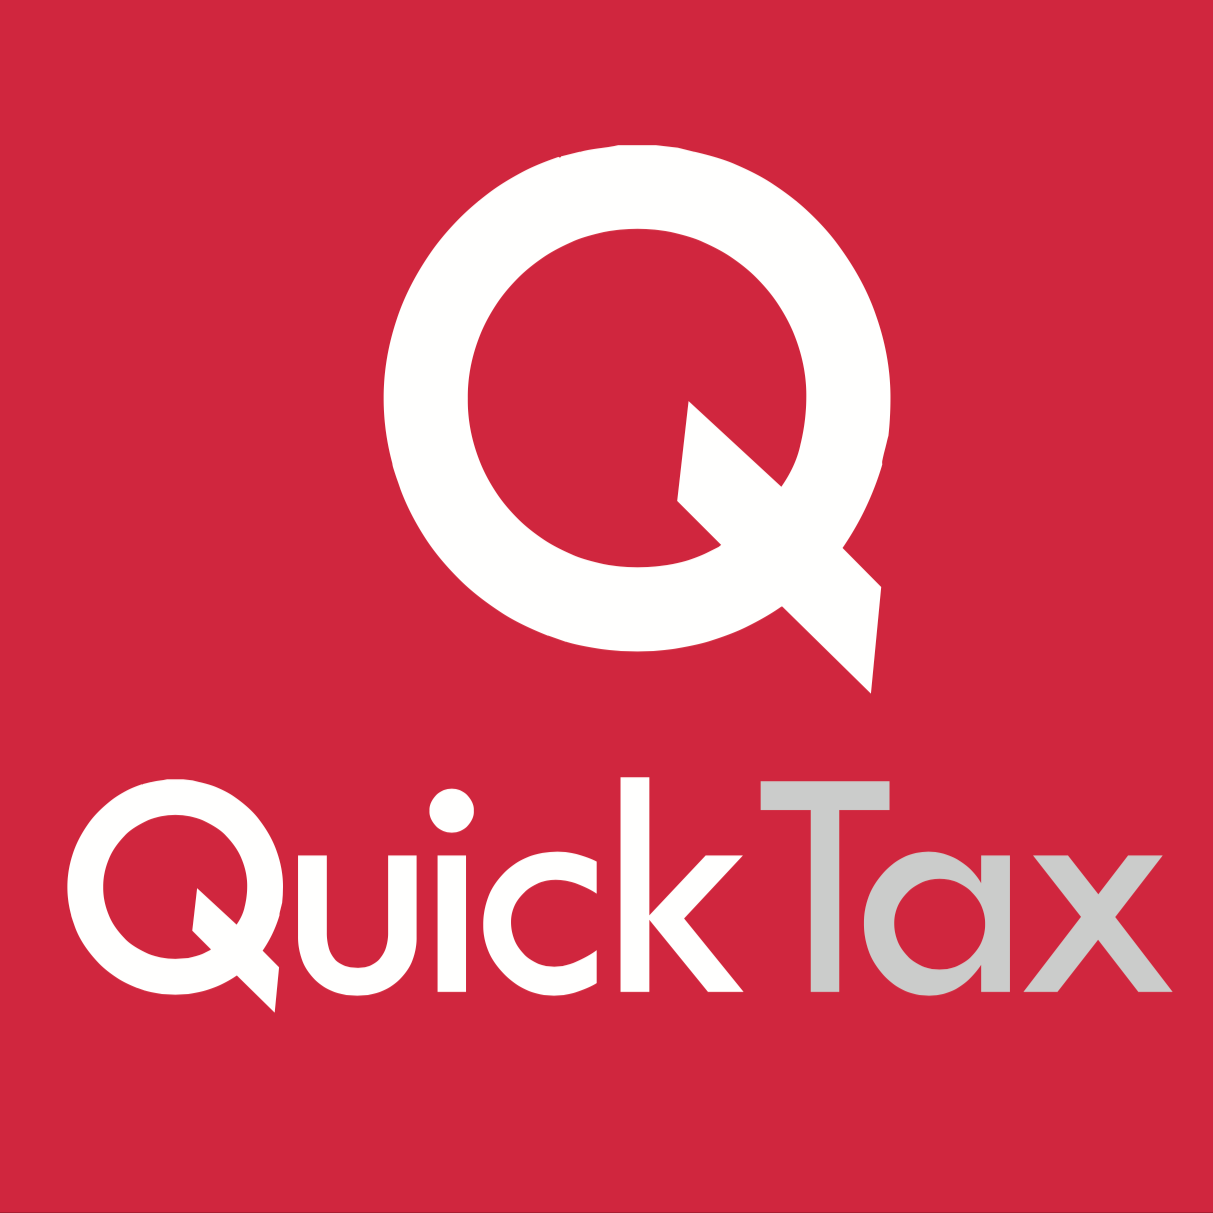 Quick Tax Service of 174th St